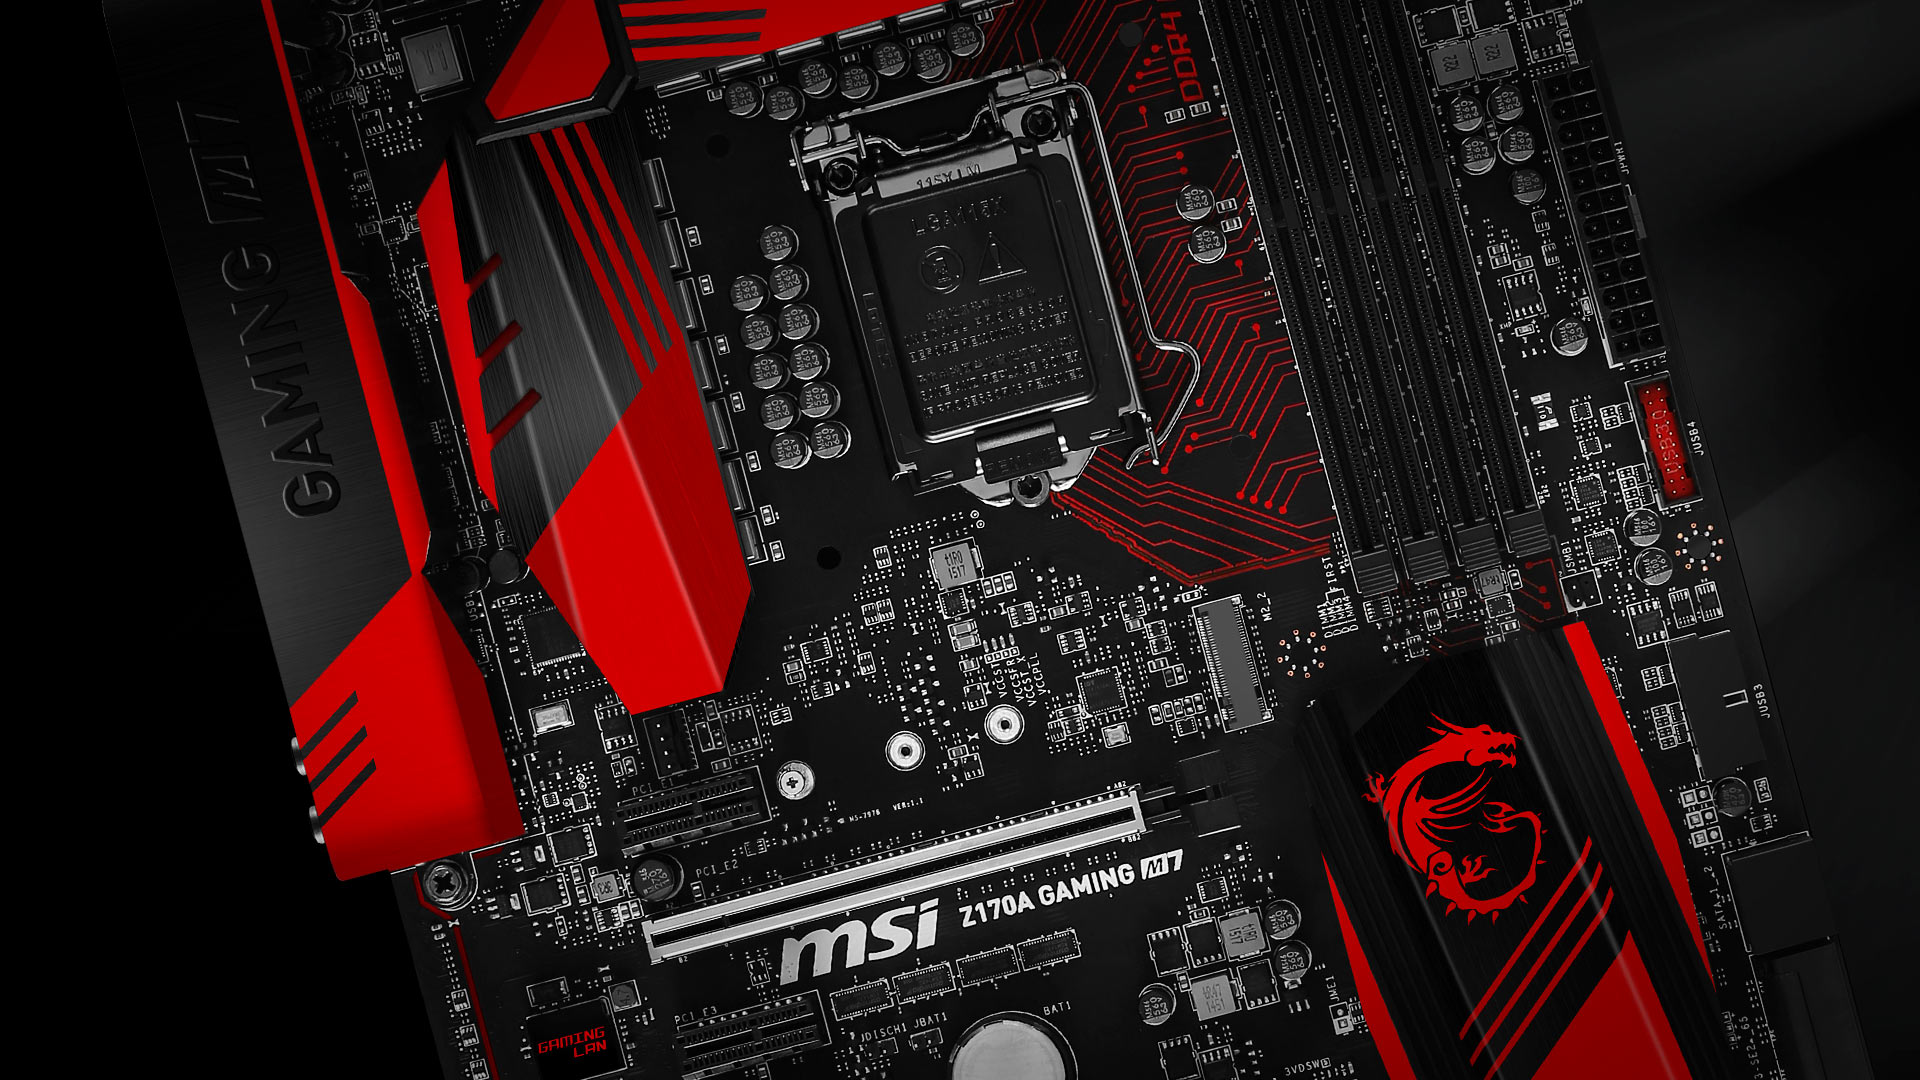 Z170a Gaming M7 Motherboard The World Leader In Lt Magazine Circuit Collection Volume 1 Hardware Design Articles Dna